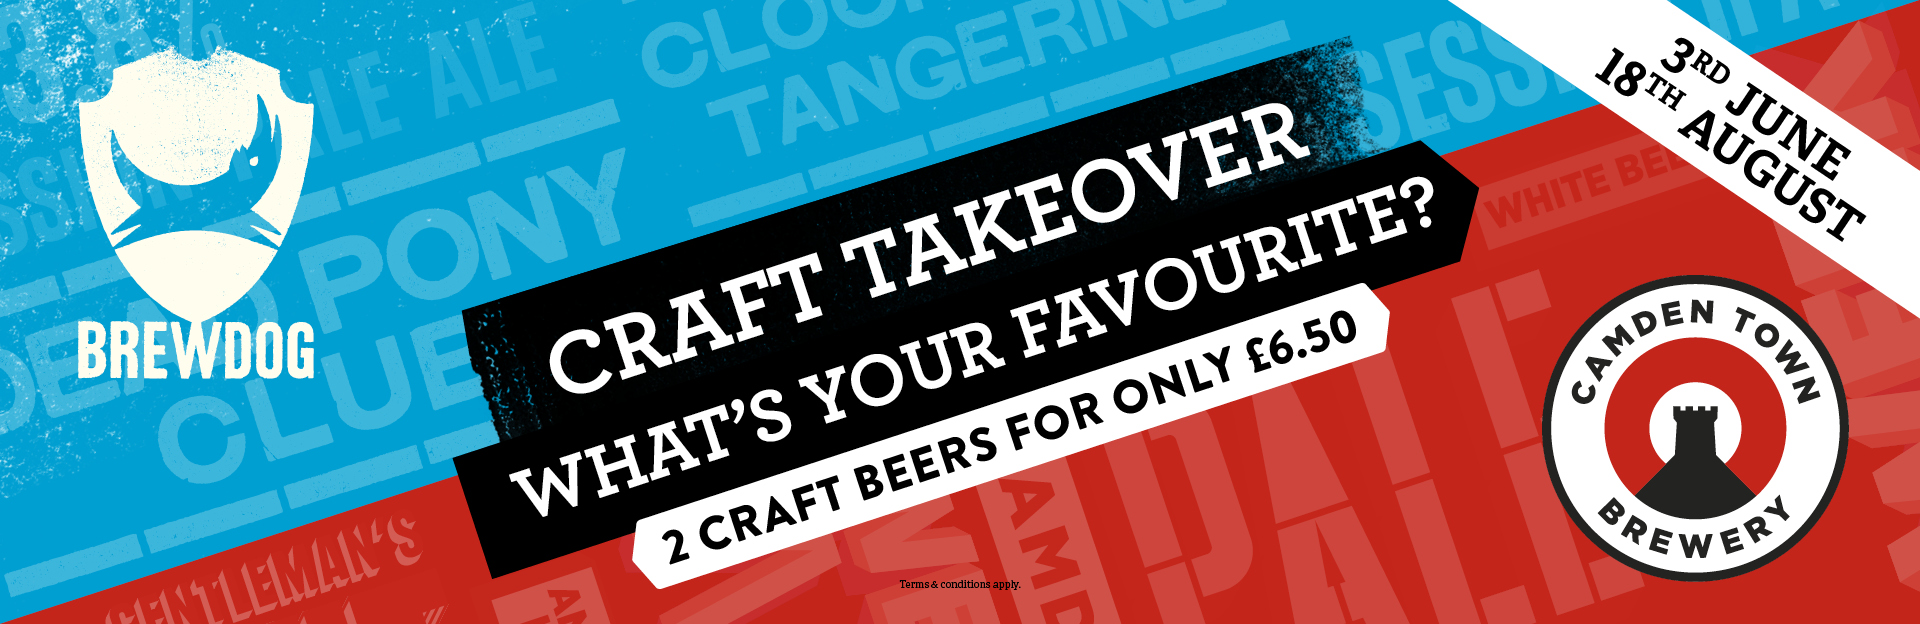 Craft Takeover at The Half Moon Inn